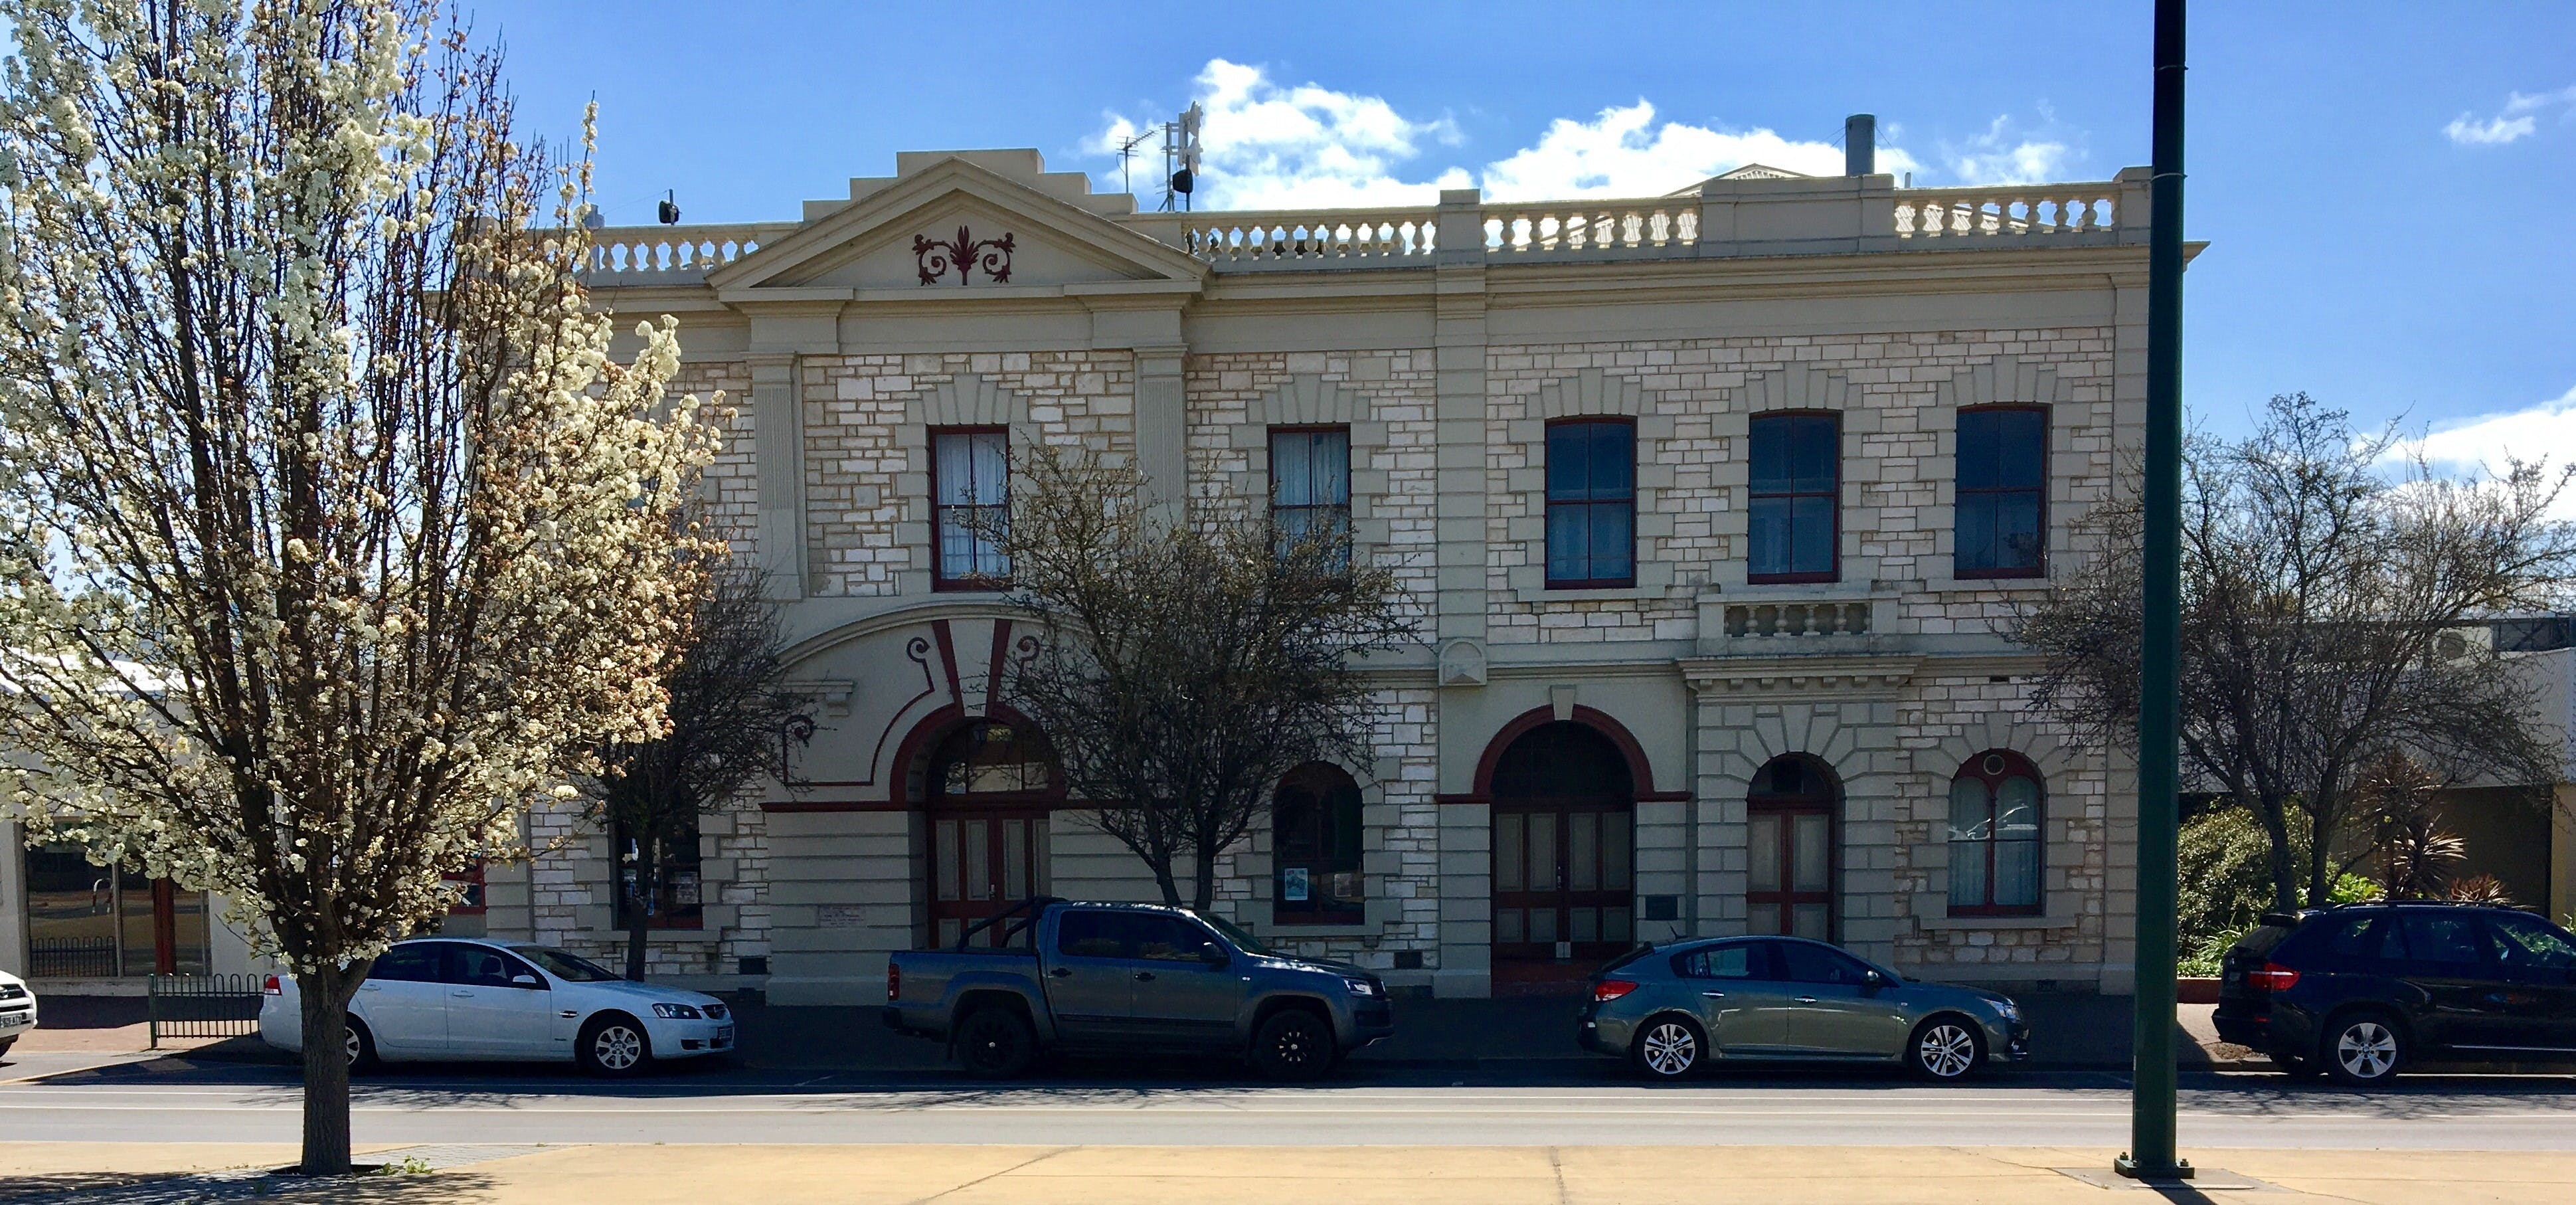 Naracoorte Town Hall - Attractions